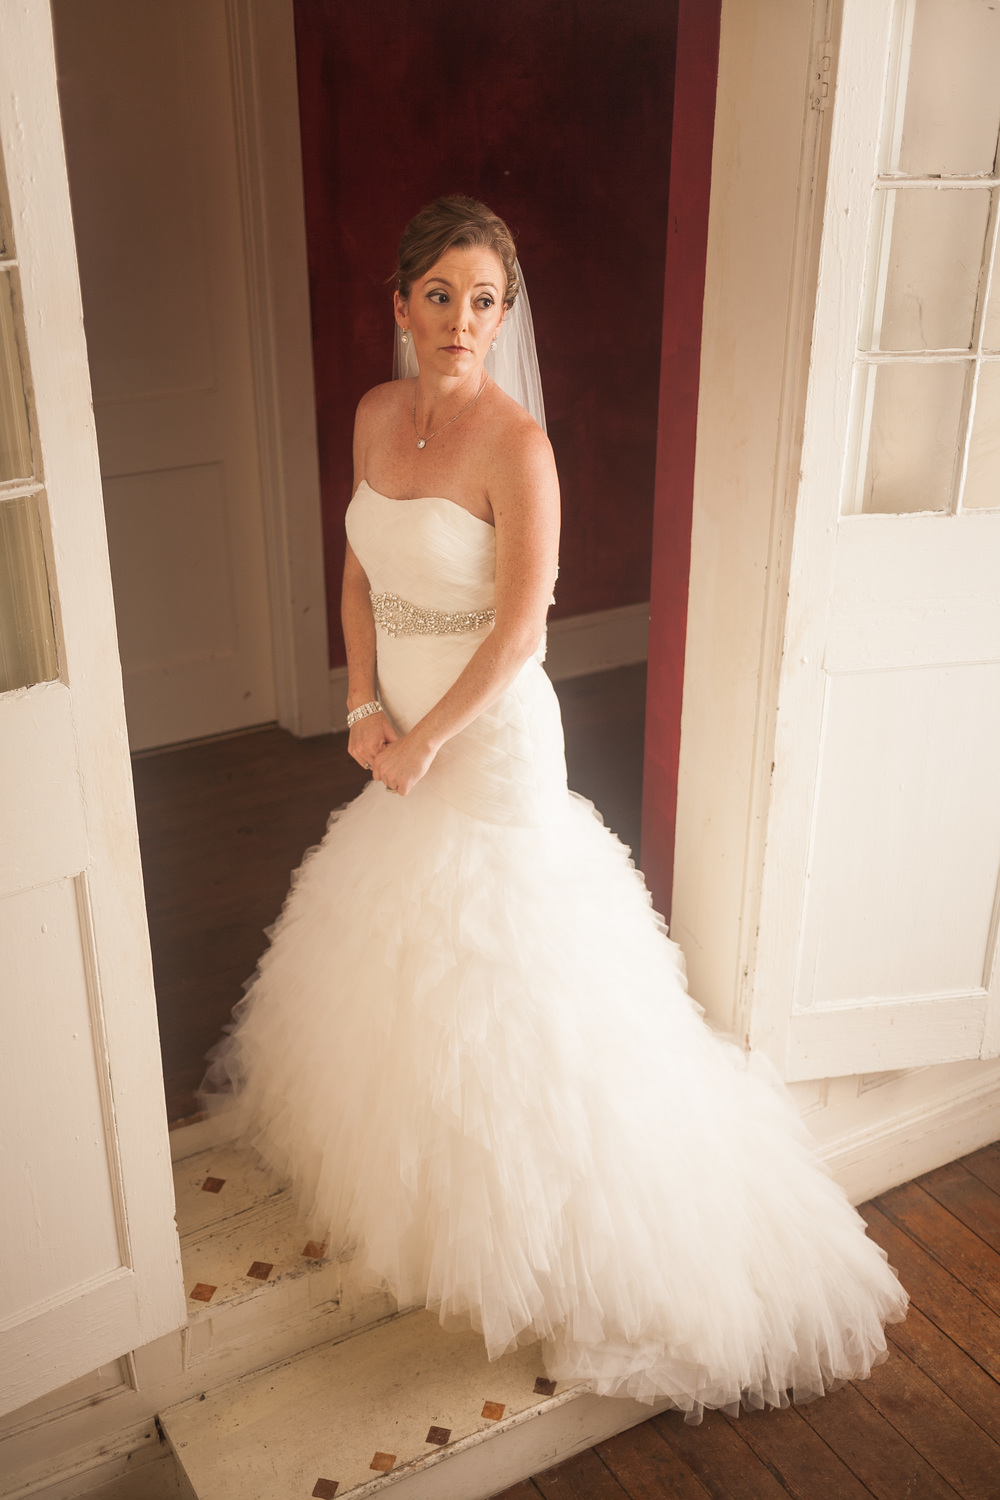 wedding photographer bent-lee carr the kyle house fincastle virginia bride in doorway looking off camera soft side light